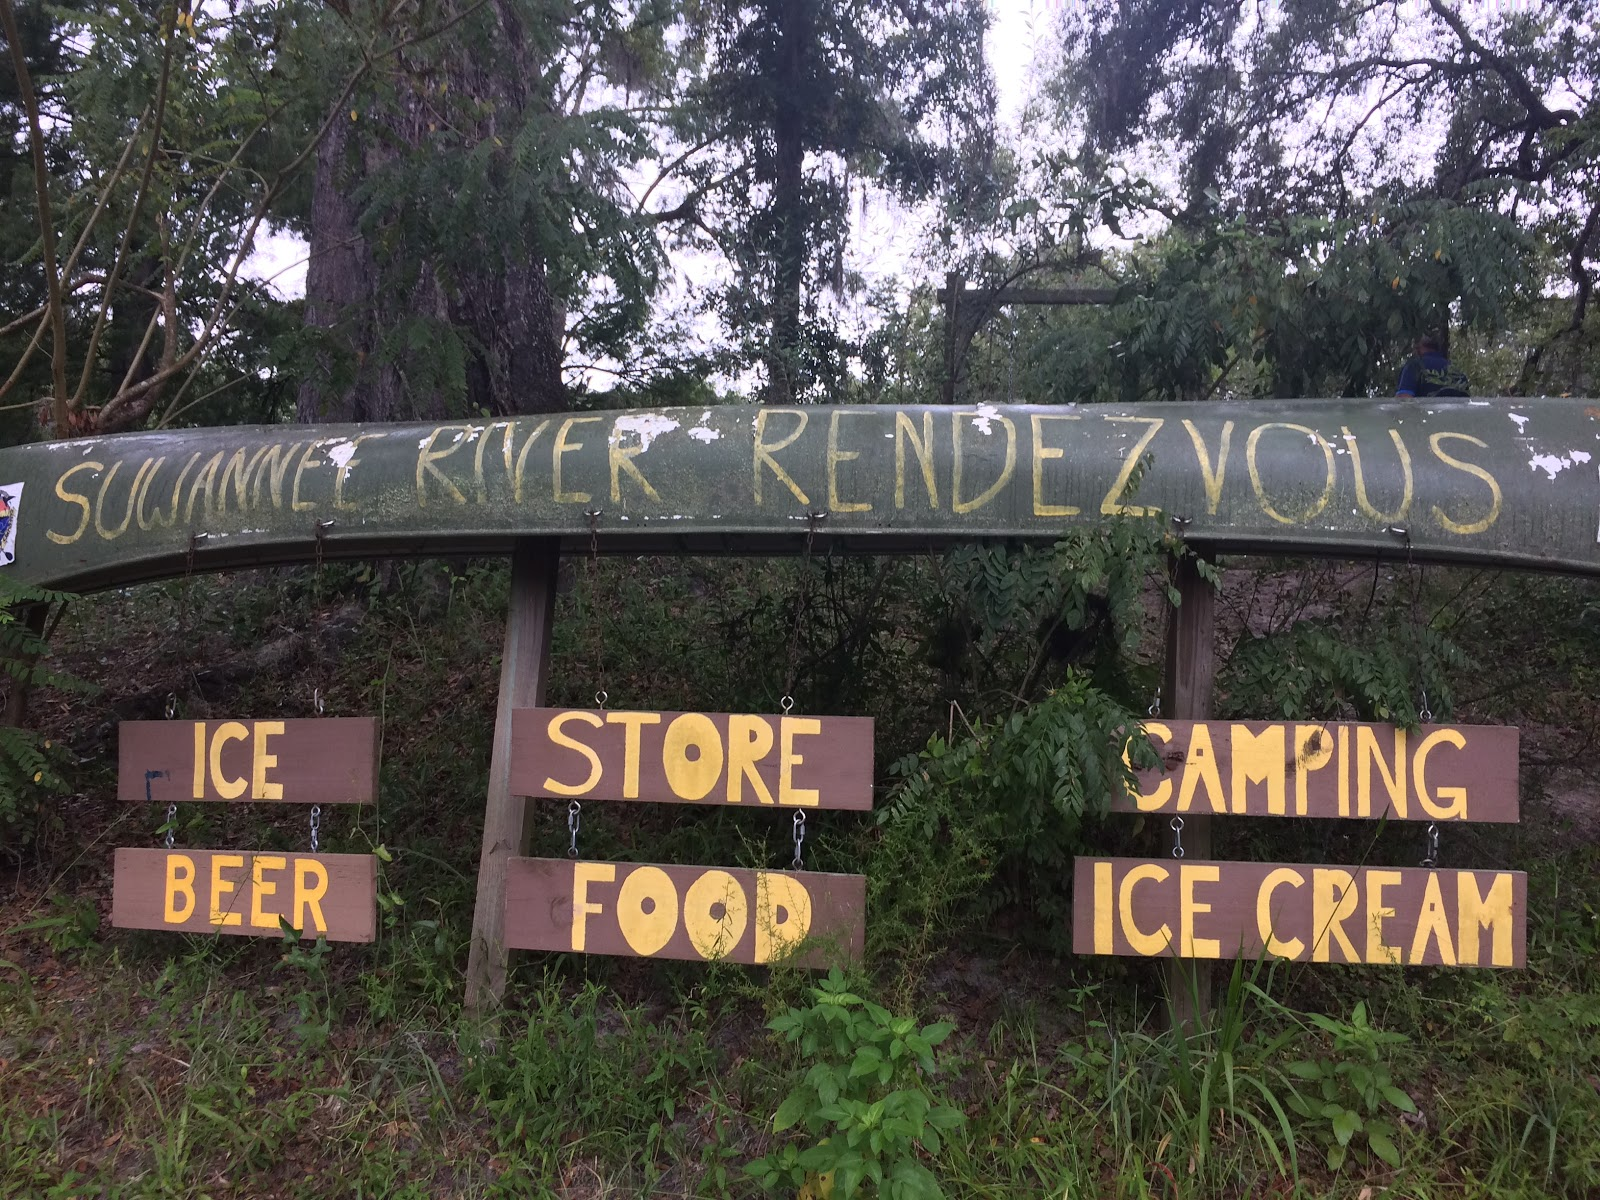 Camping With Friends Is Always Better! Camping With Friends That Have  Kayaks Is More Better! Camping With Friends That Have Kayaks In A  Campground Less Than ...